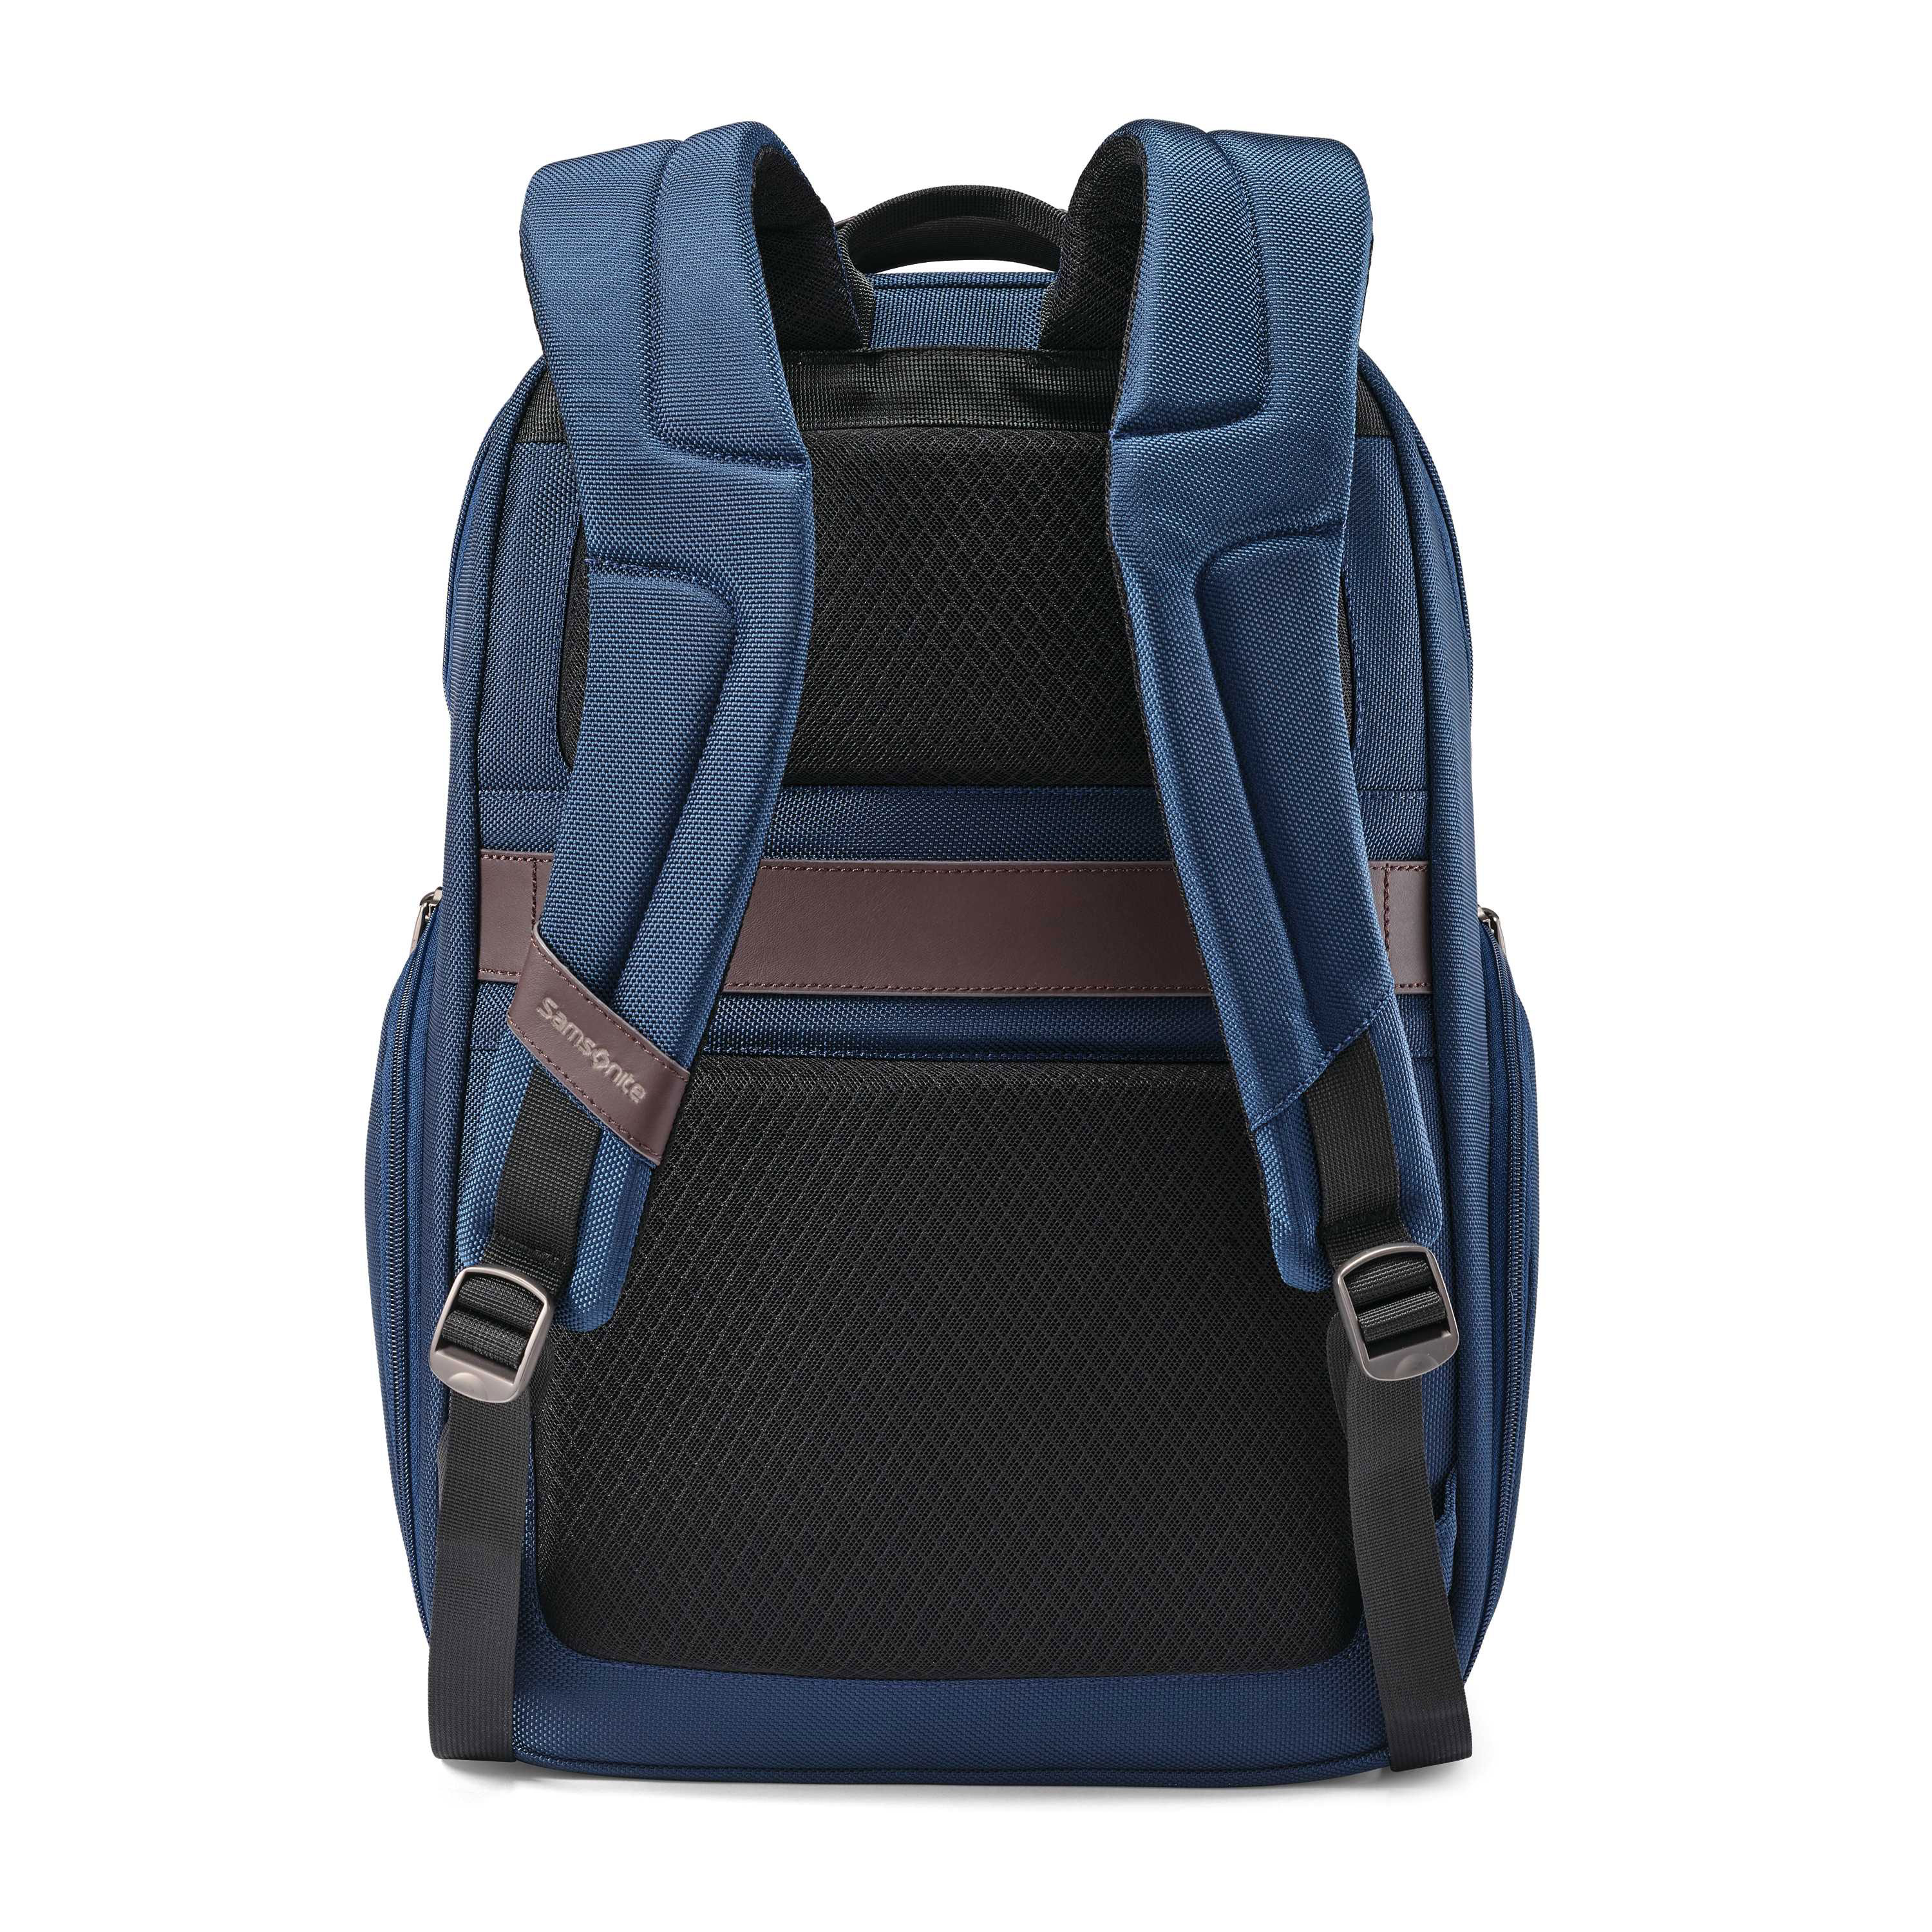 Samsonite-Kombi-Large-Backpack thumbnail 7